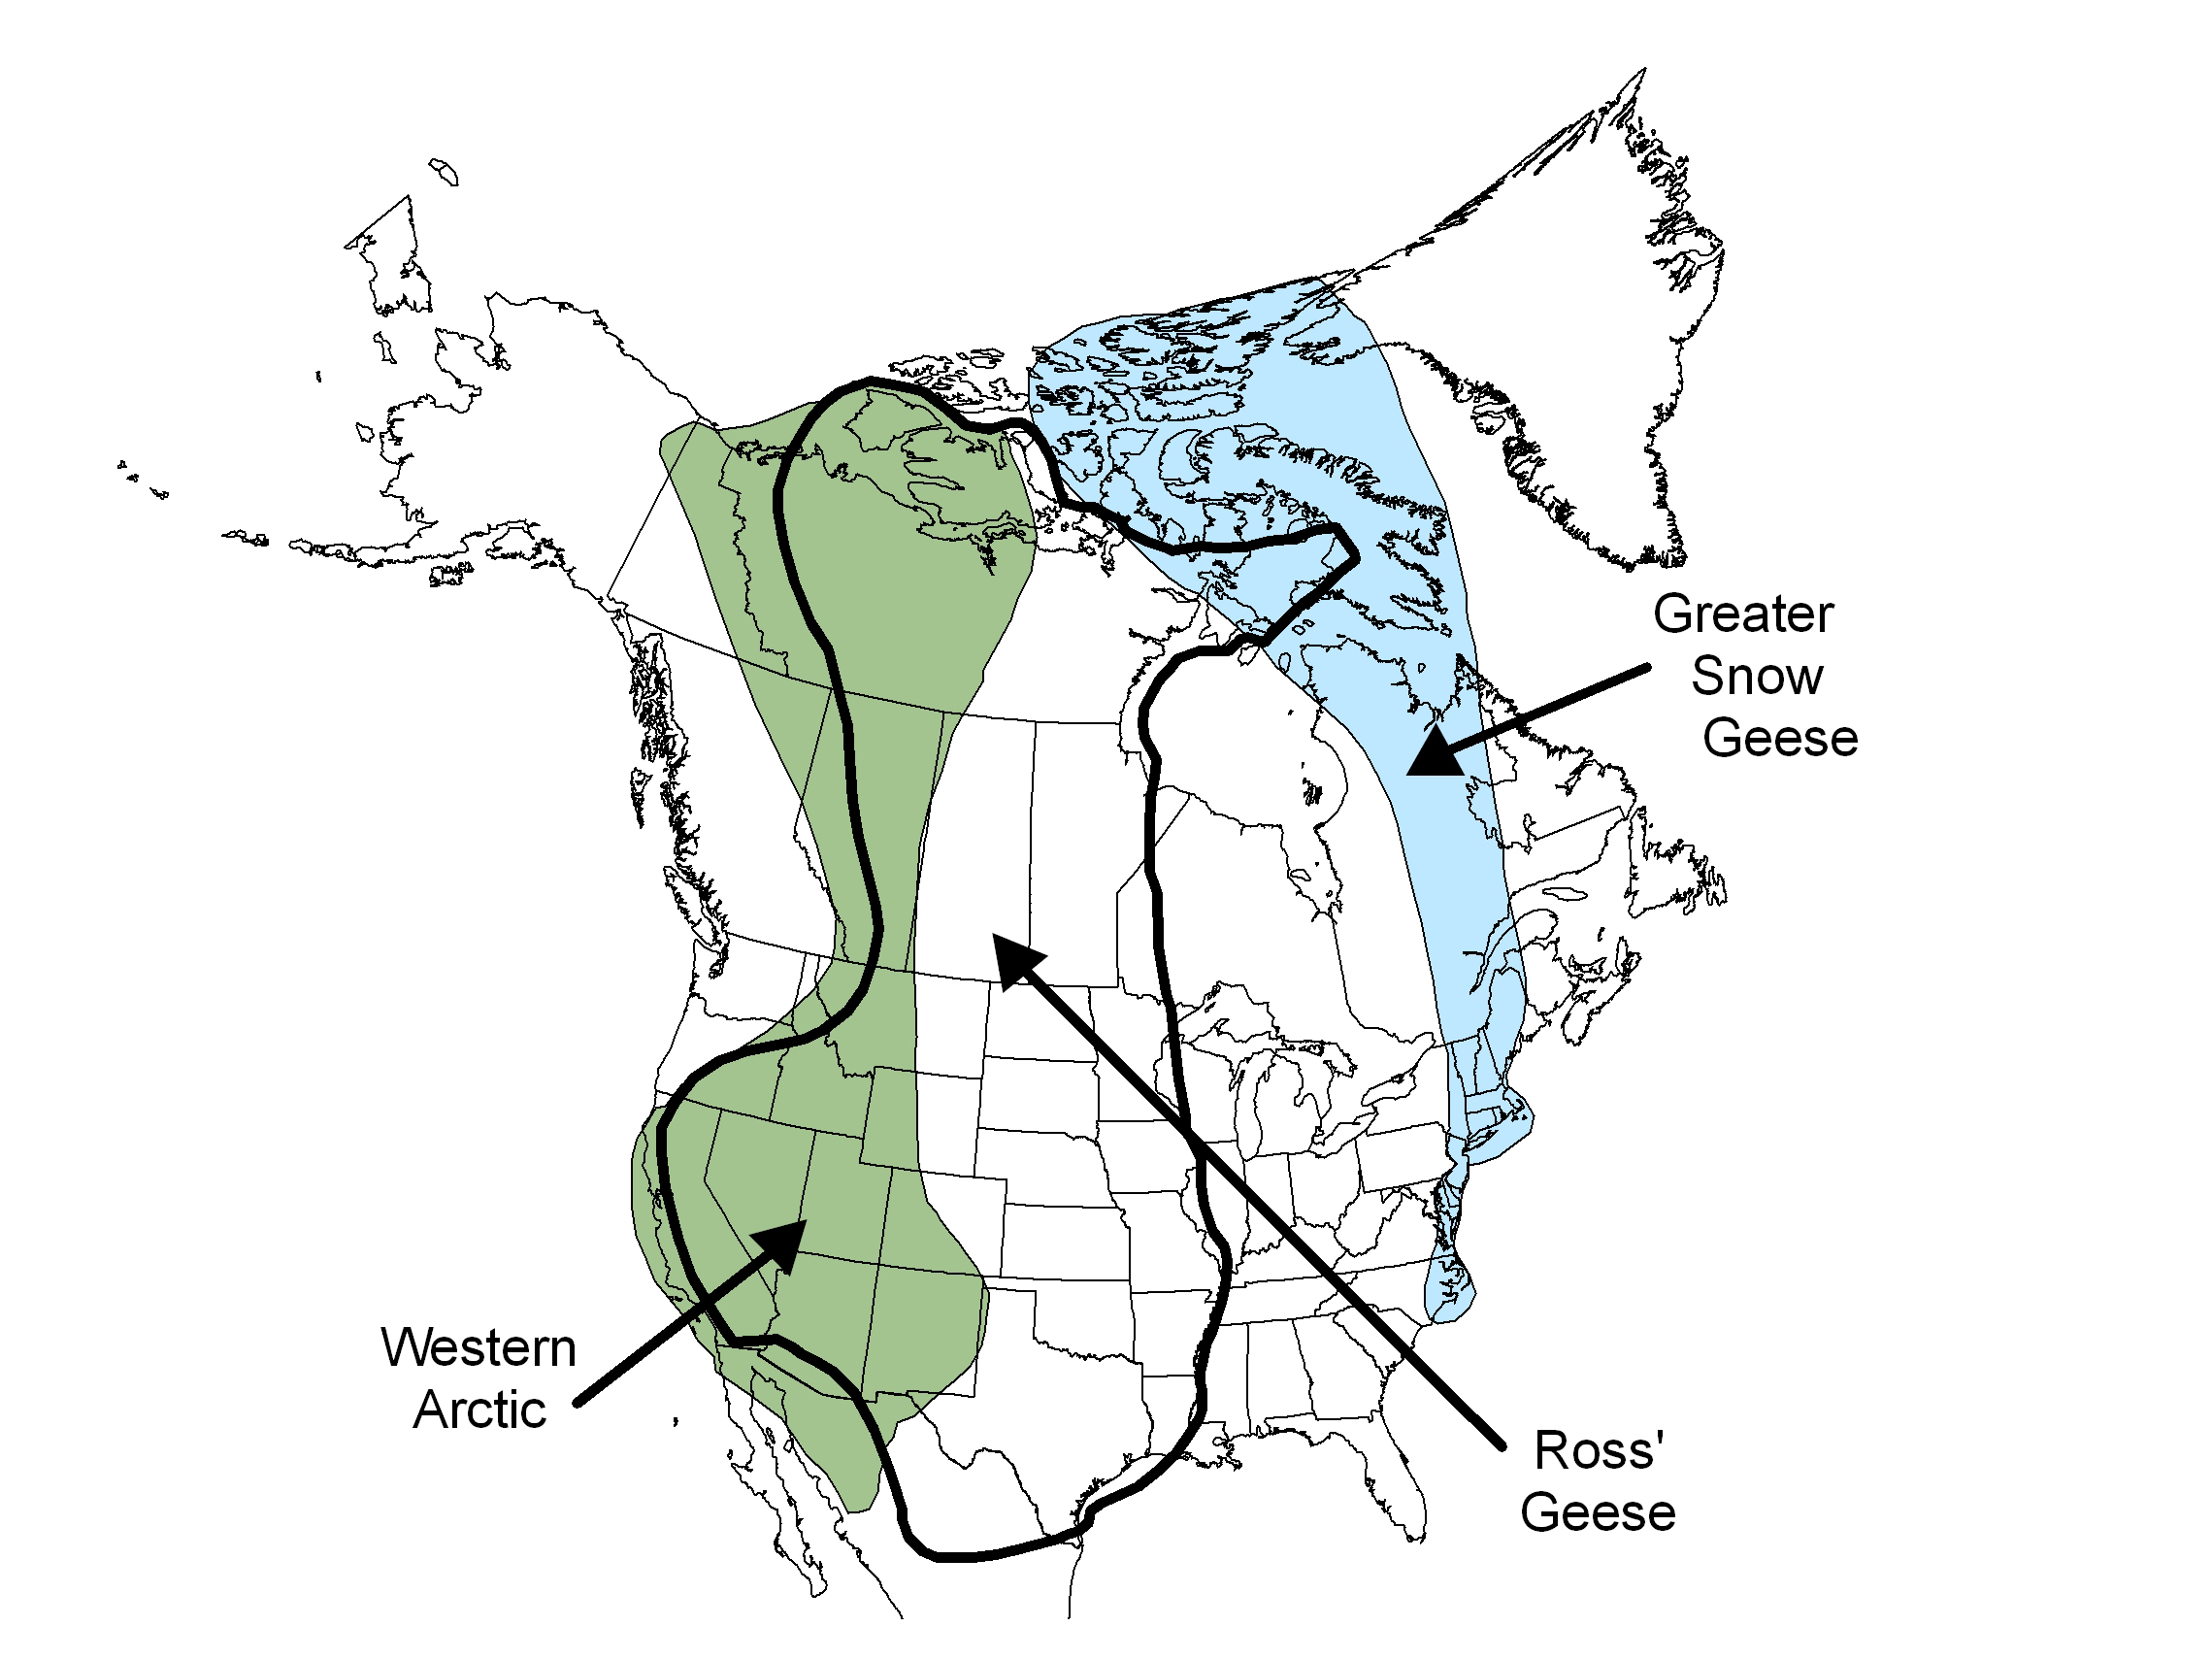 What's changing how snow geese migrate? – Stories from ... on snow goose range map, moose migration map, canadian geese migration route map, great migration map, northern shoveler, tundra swan, deer migration map, trumpeter swan, wild turkey migration map, mute swan, ruddy duck, cinnamon teal, ducks migration map, white-fronted goose, texas snow storm map, american black duck, cackling goose, turkey vulture migration map, mallard migration map, blue-winged teal migration map, cinnamon teal migration map, coyote migration map, waterfowl migration map, hummingbird migration map, killdeer migration map, swans migration map, northern pintail, canada goose, bald eagle migration map, wood duck, reindeer migration map, american coot migration map, american wigeon, blue-winged teal,